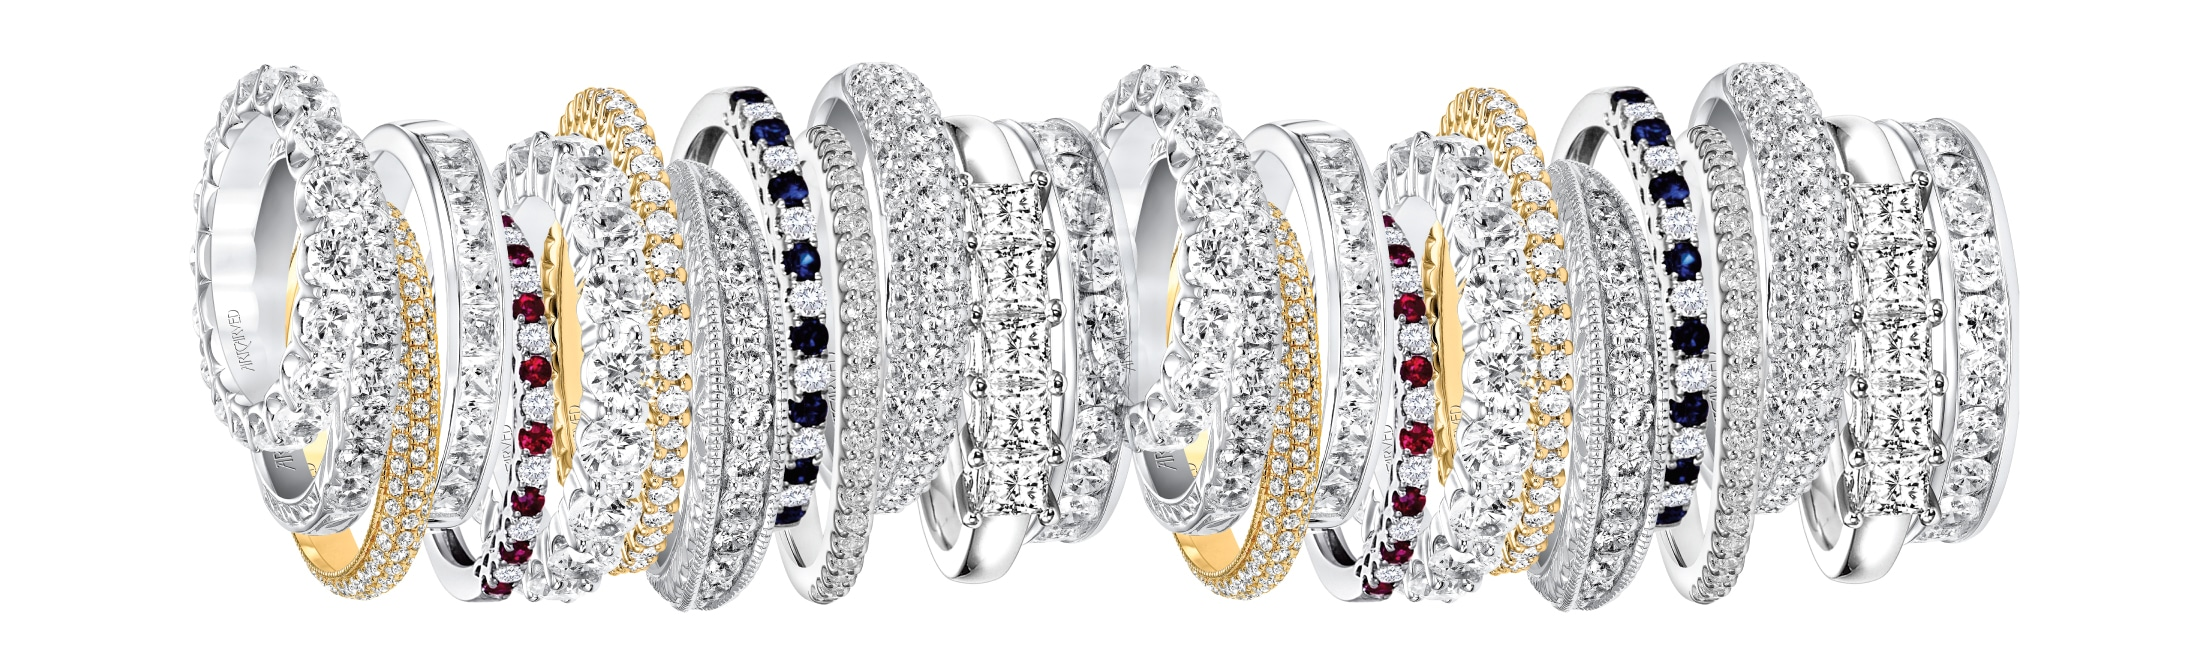 Boston Wedding Ring Jeweler